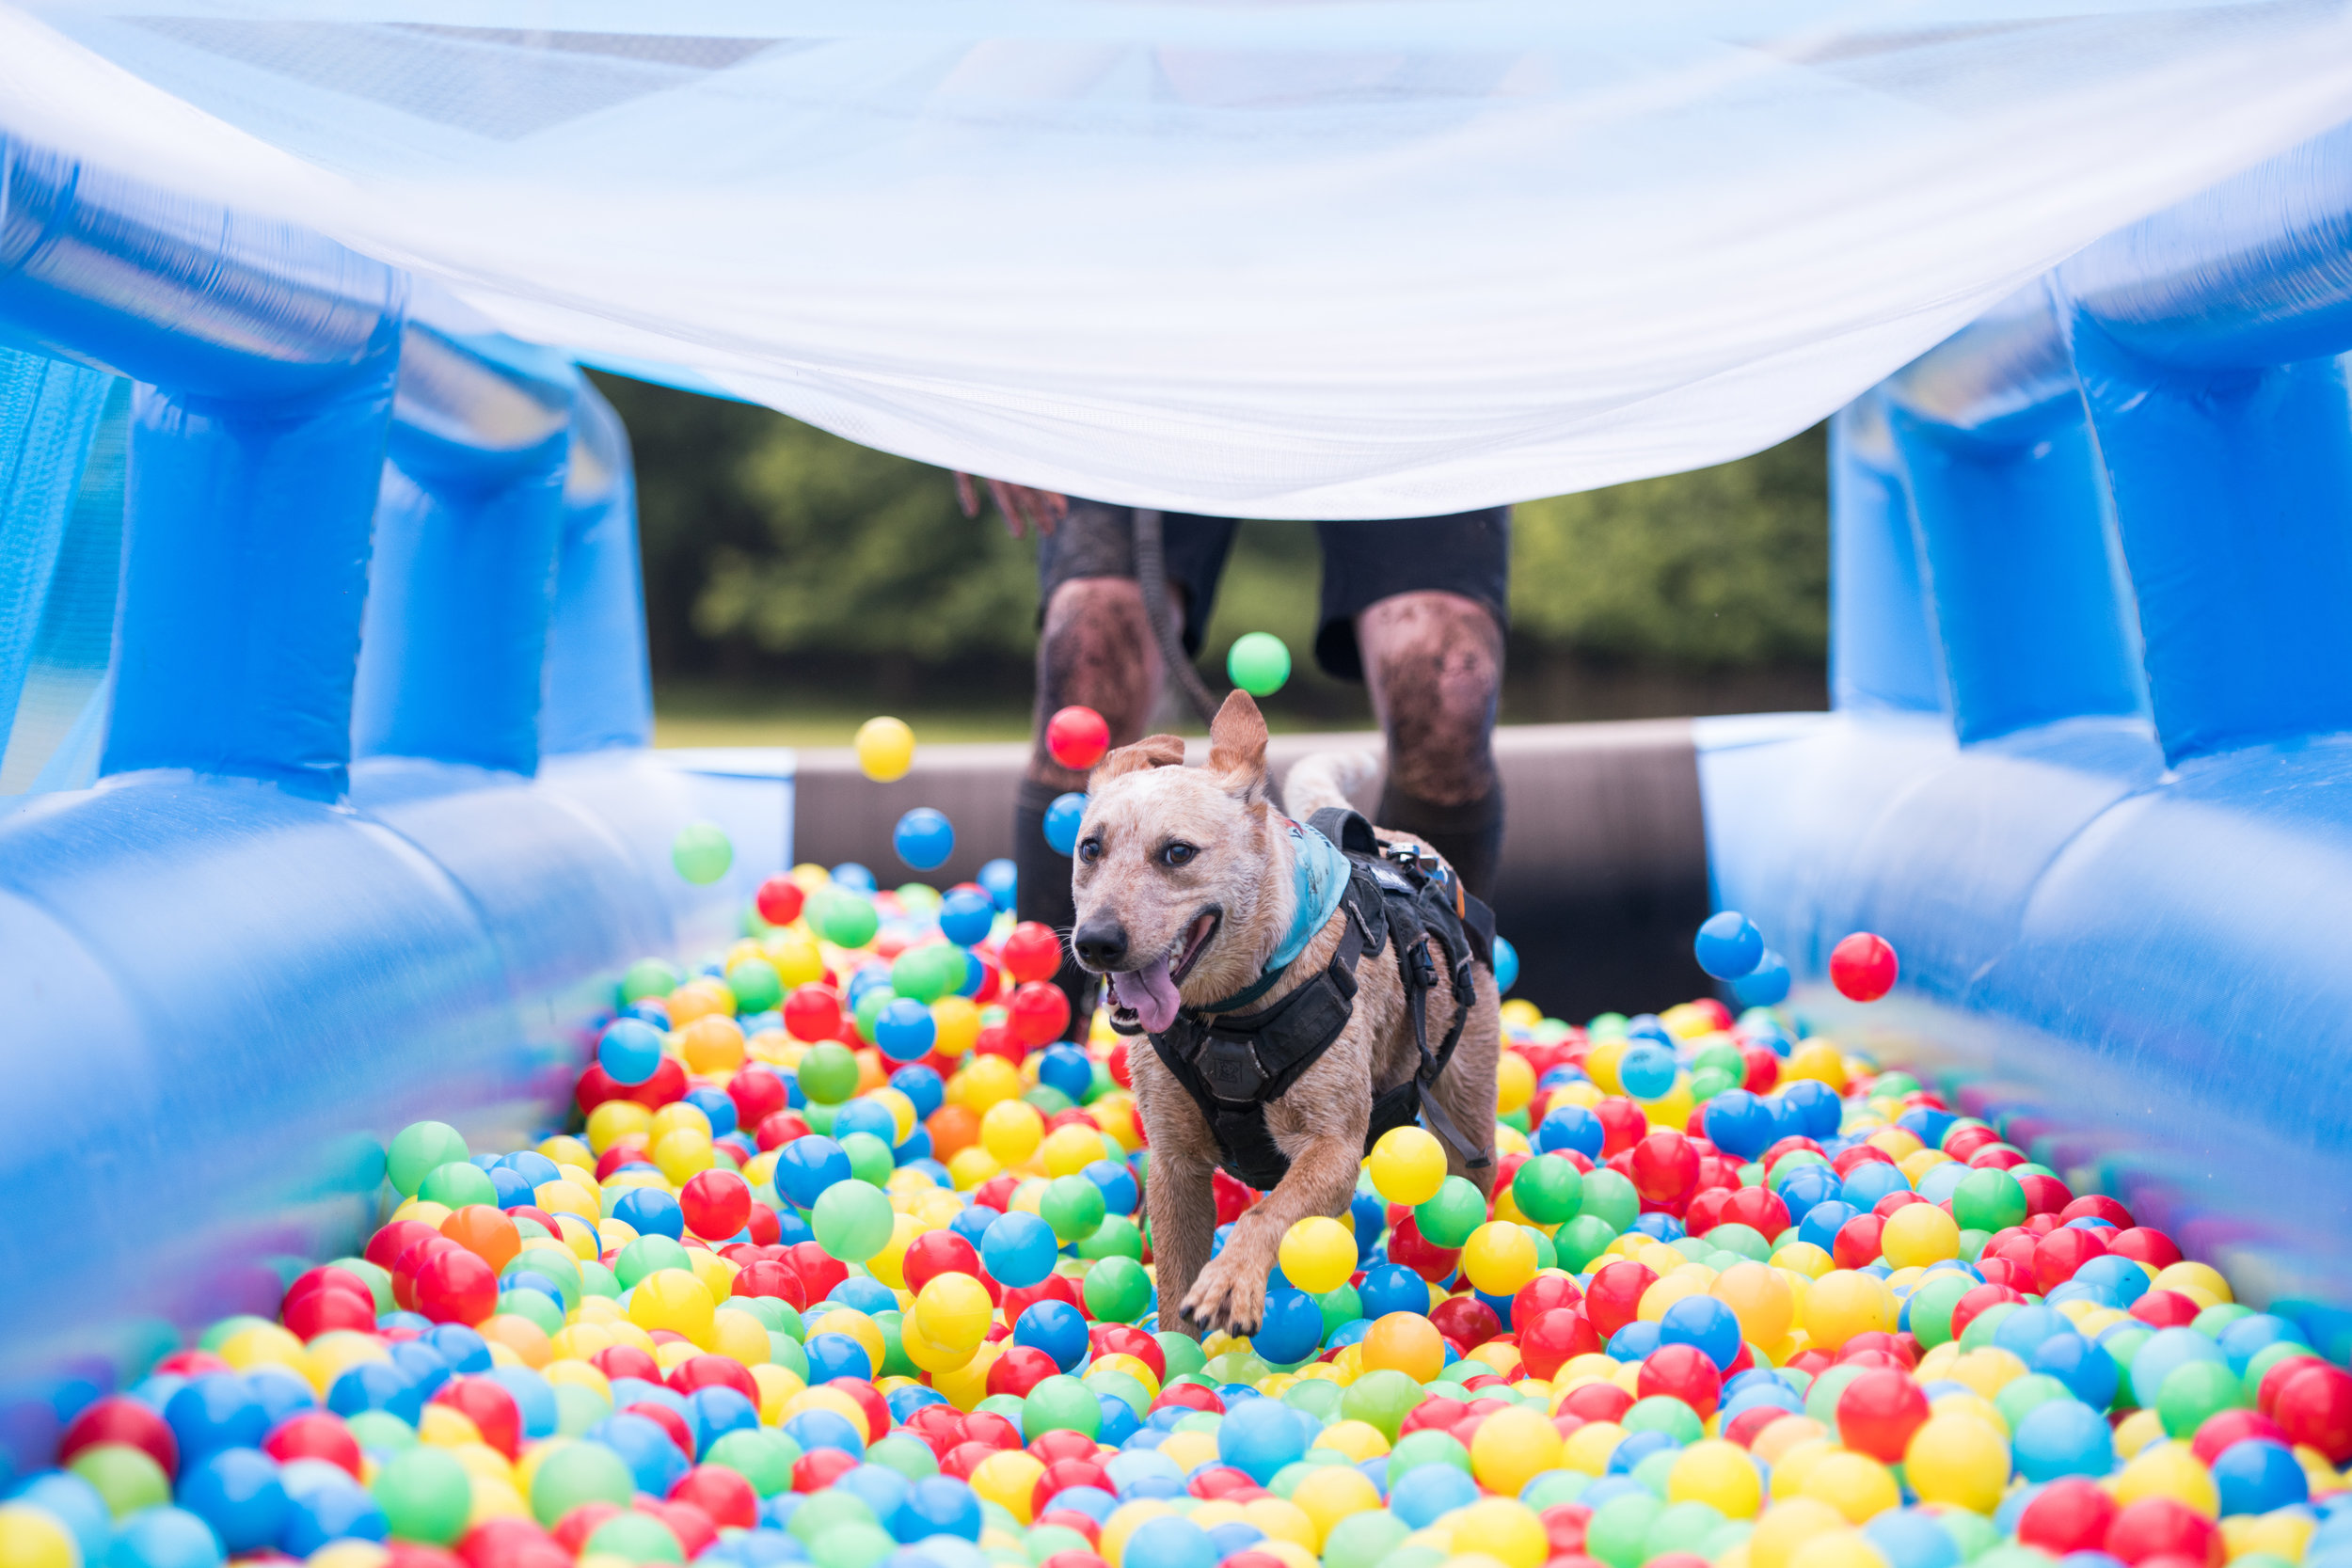 DB-20180609-0125-2446 Nottingham happy dog running through ball pit.jpg